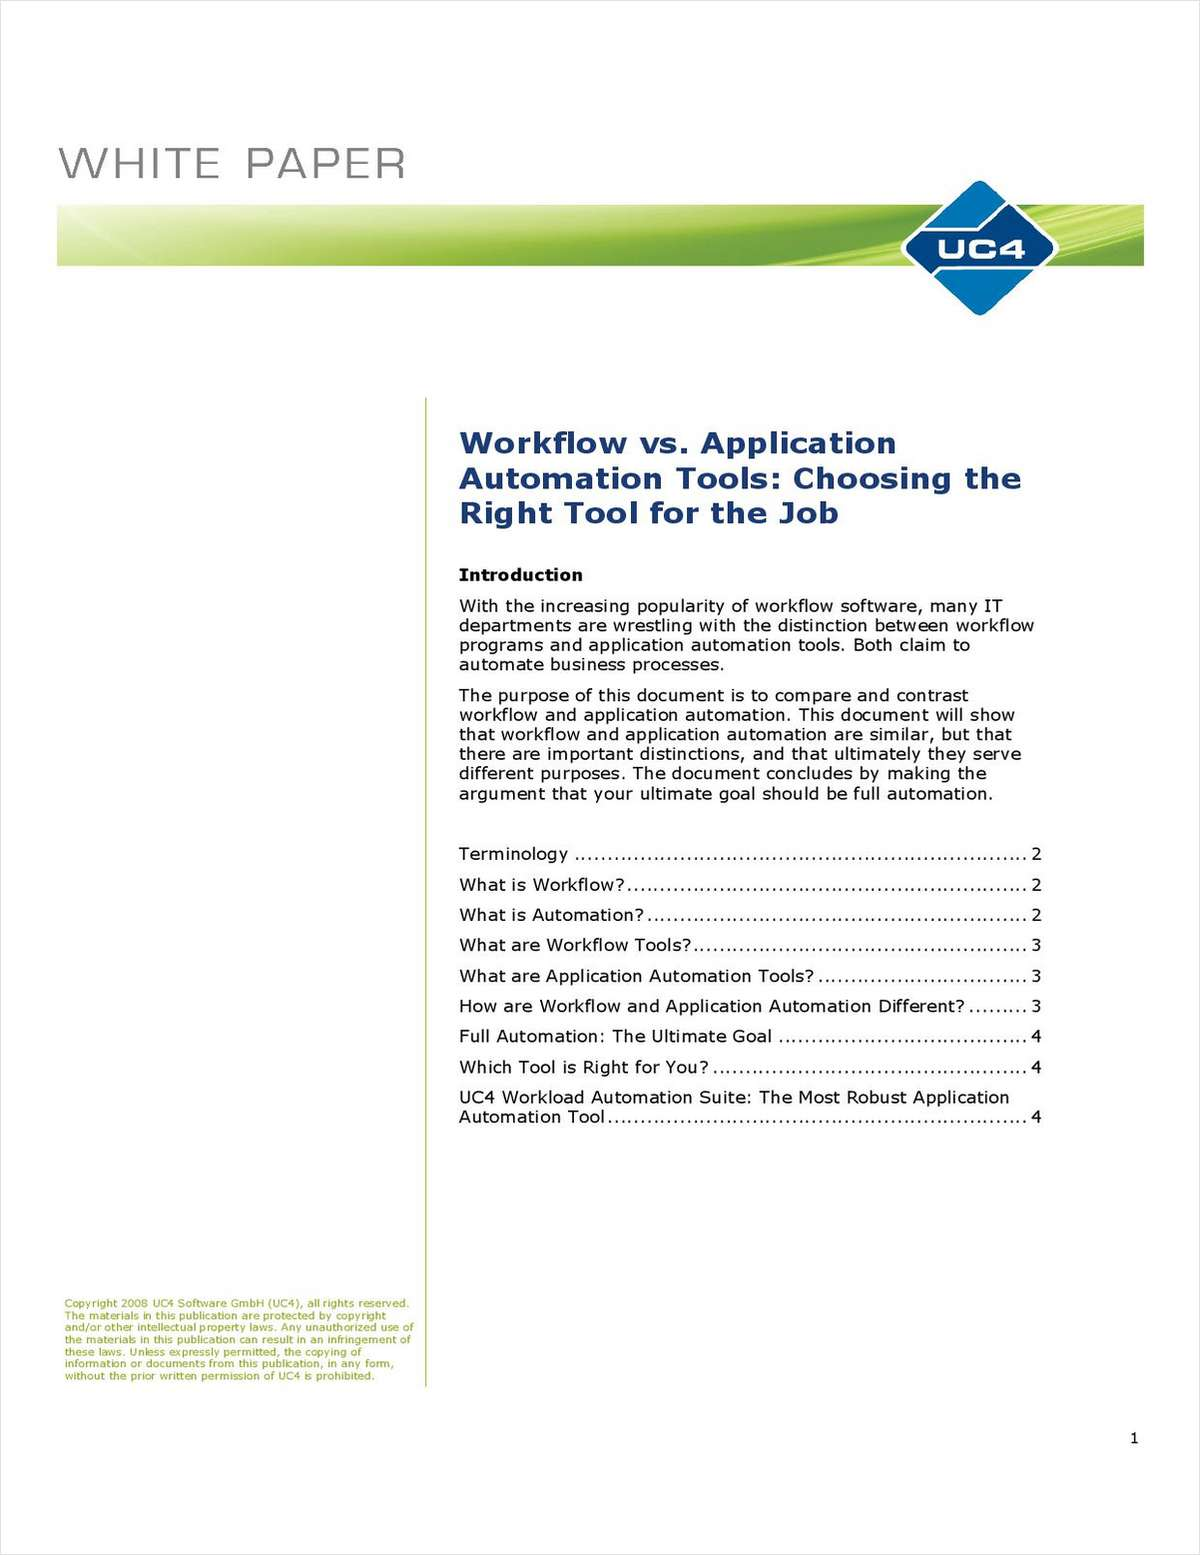 Workflow vs. Application Automation Tools: Choosing the Right Tool for the Job